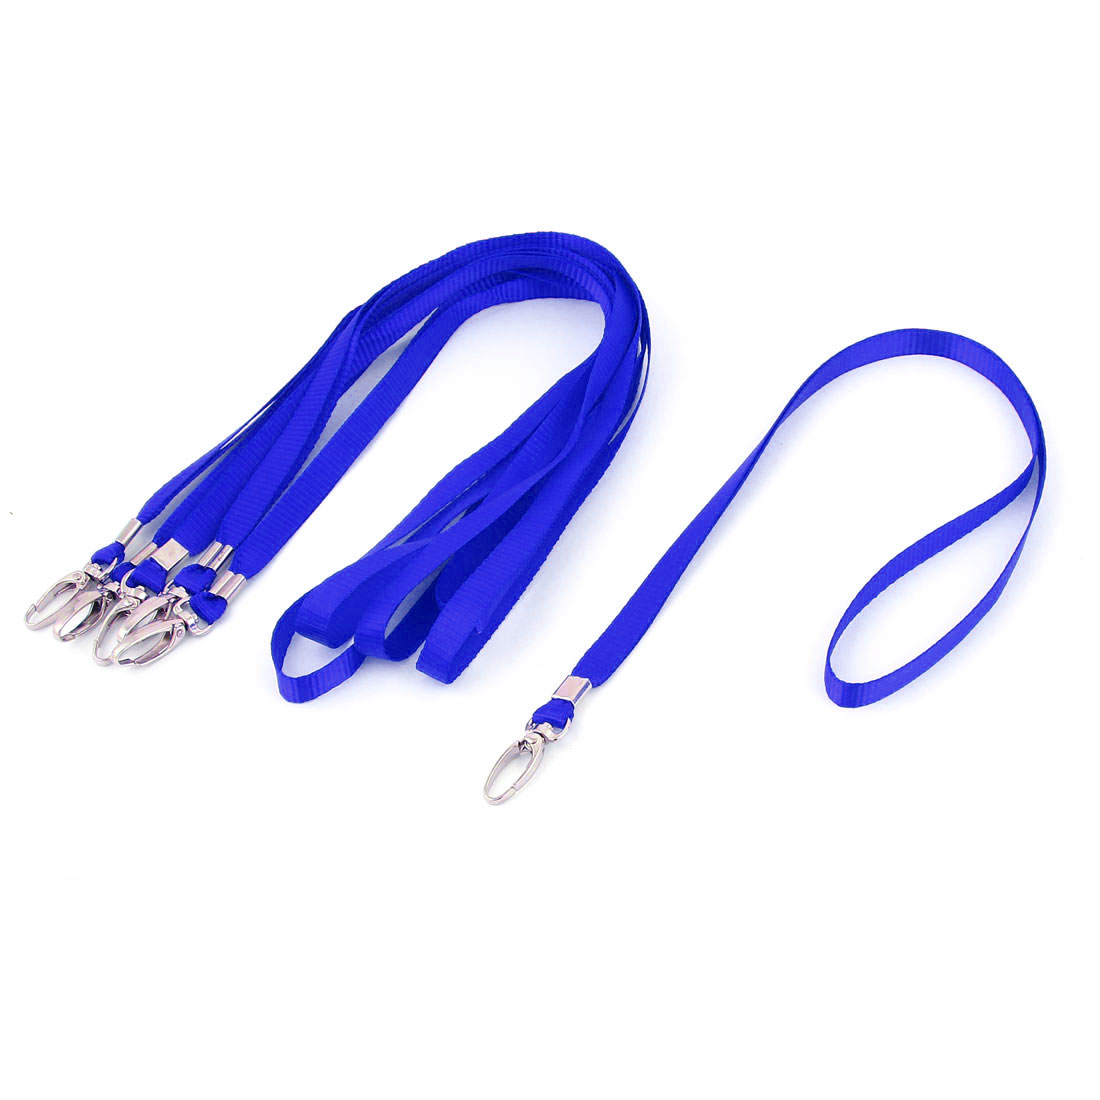 Metal Hook Clip Business ID Card Tag Pass Badge Neck Strap Lanyard Blue 5pcs